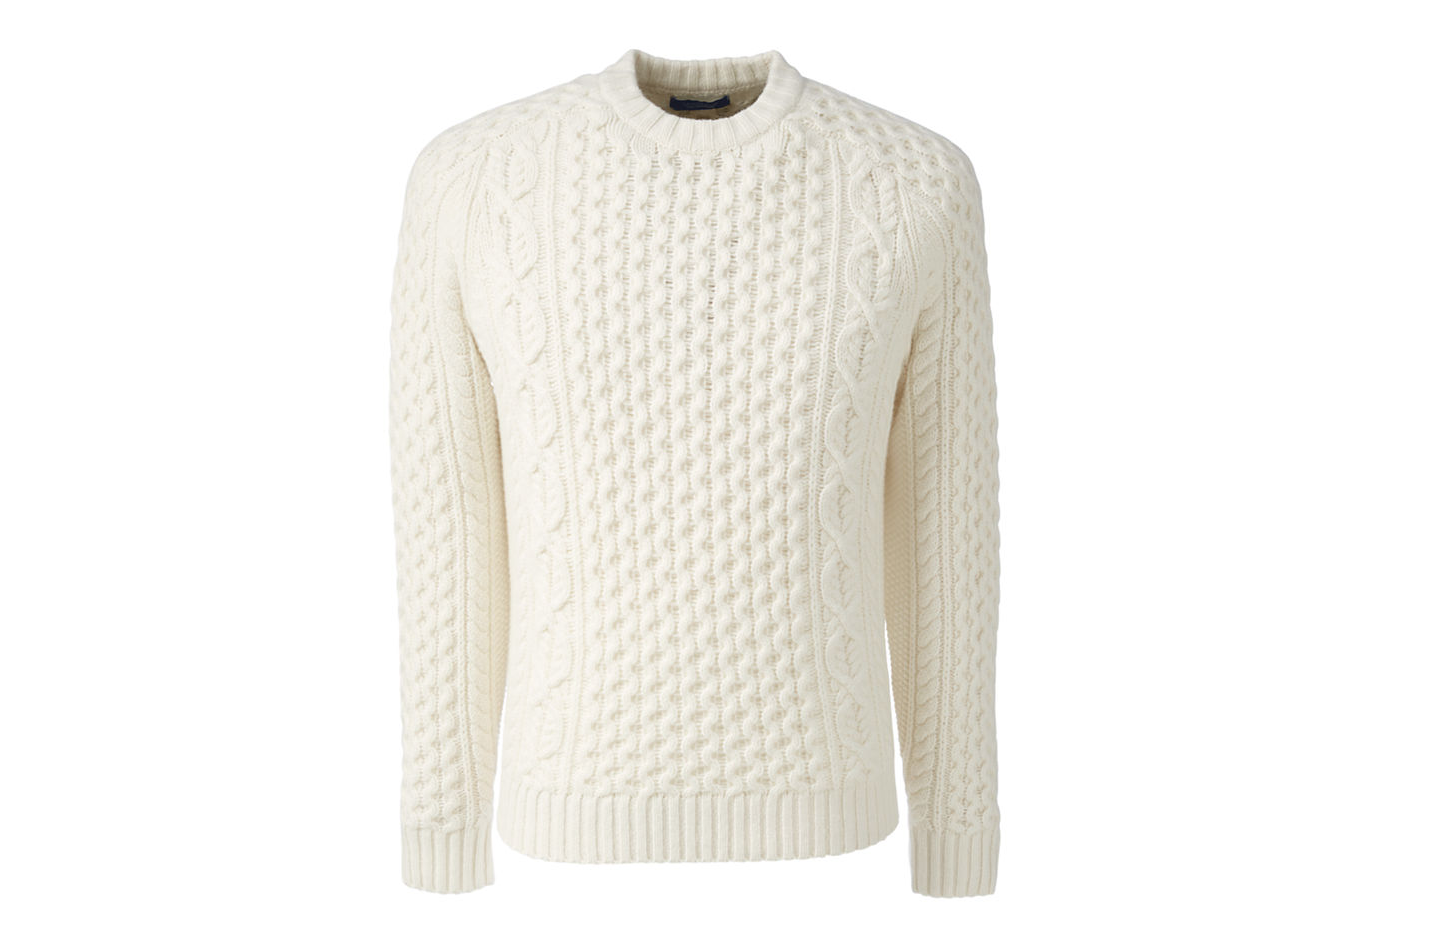 High-end Men's Cashmere Sweater for Cheap | Daily Lather